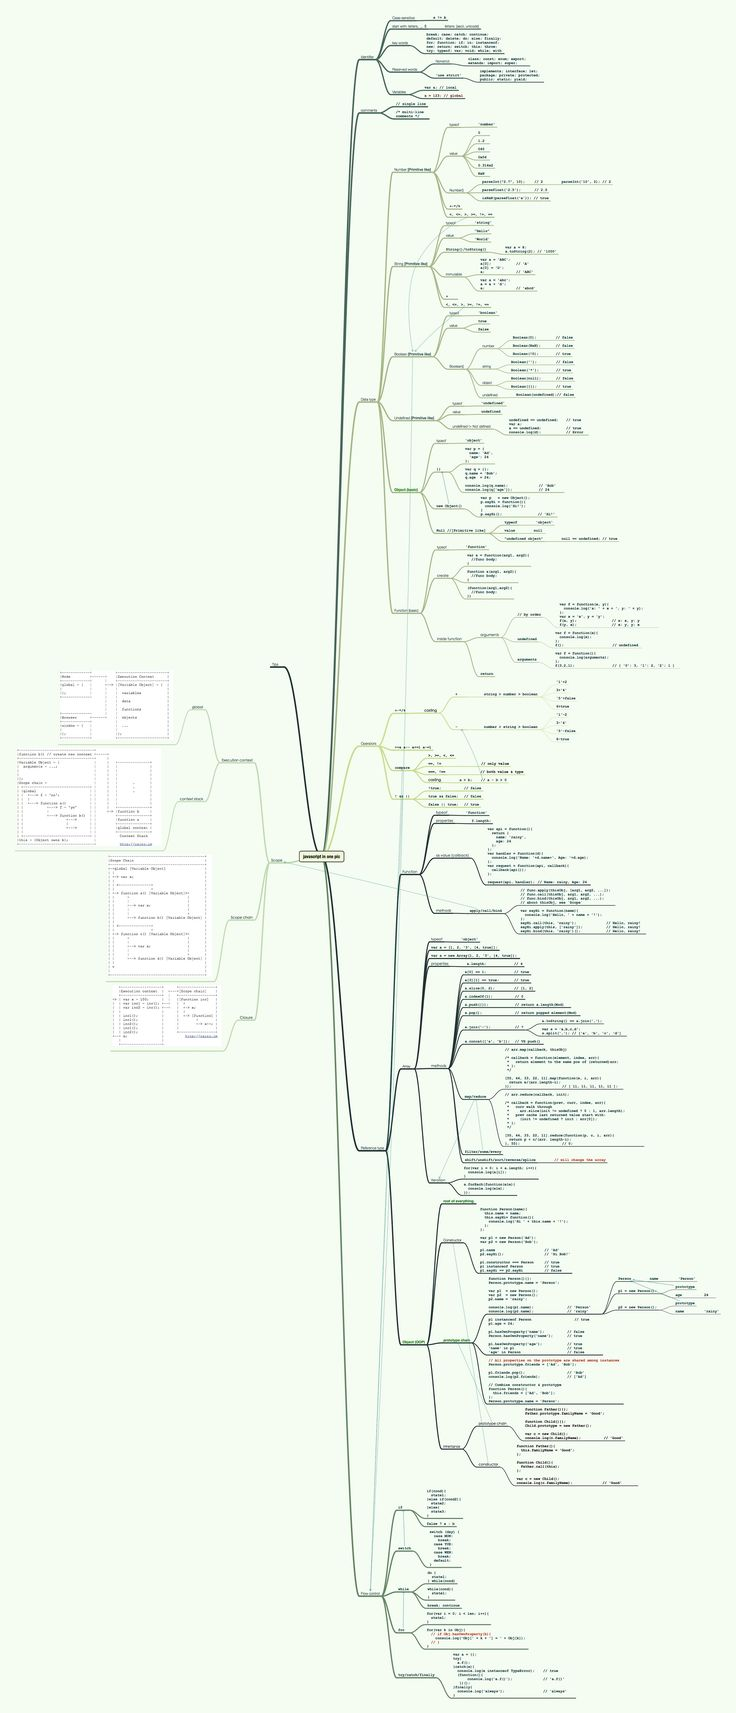 A developer named Yusheng has created an amazing infographic that shows the entire JavaScript language syntax into one single image.